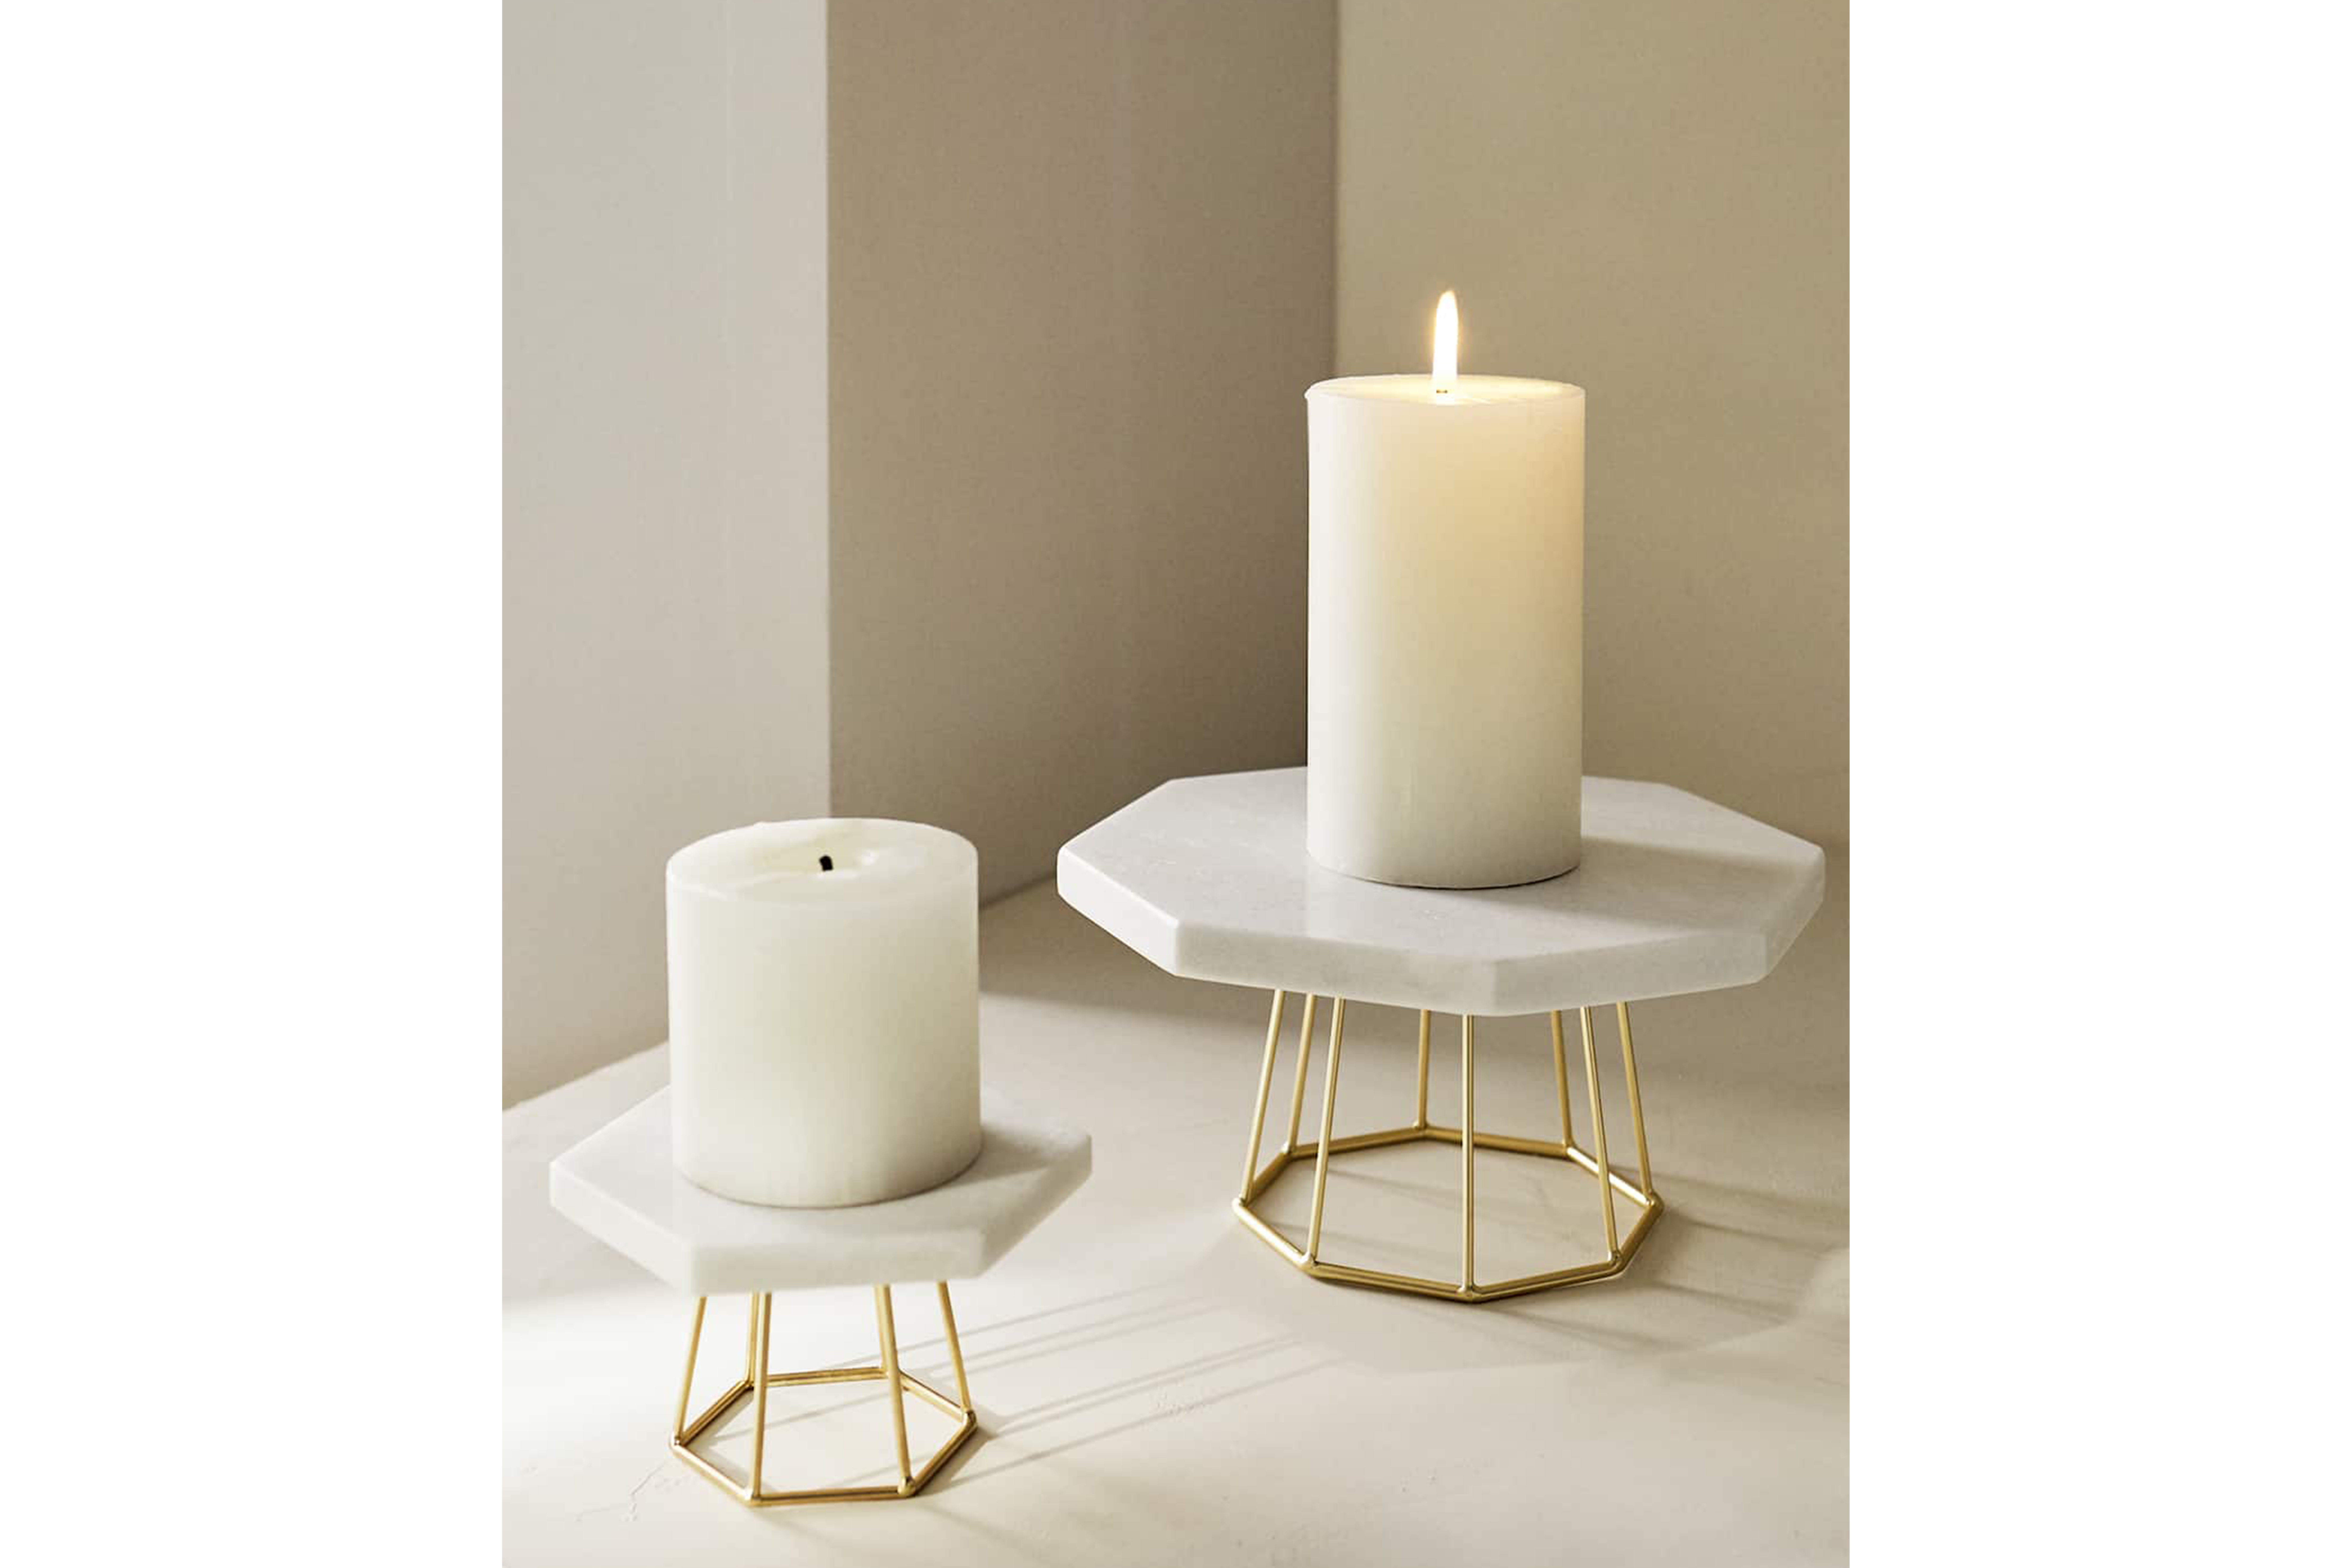 zara home collection must buy items